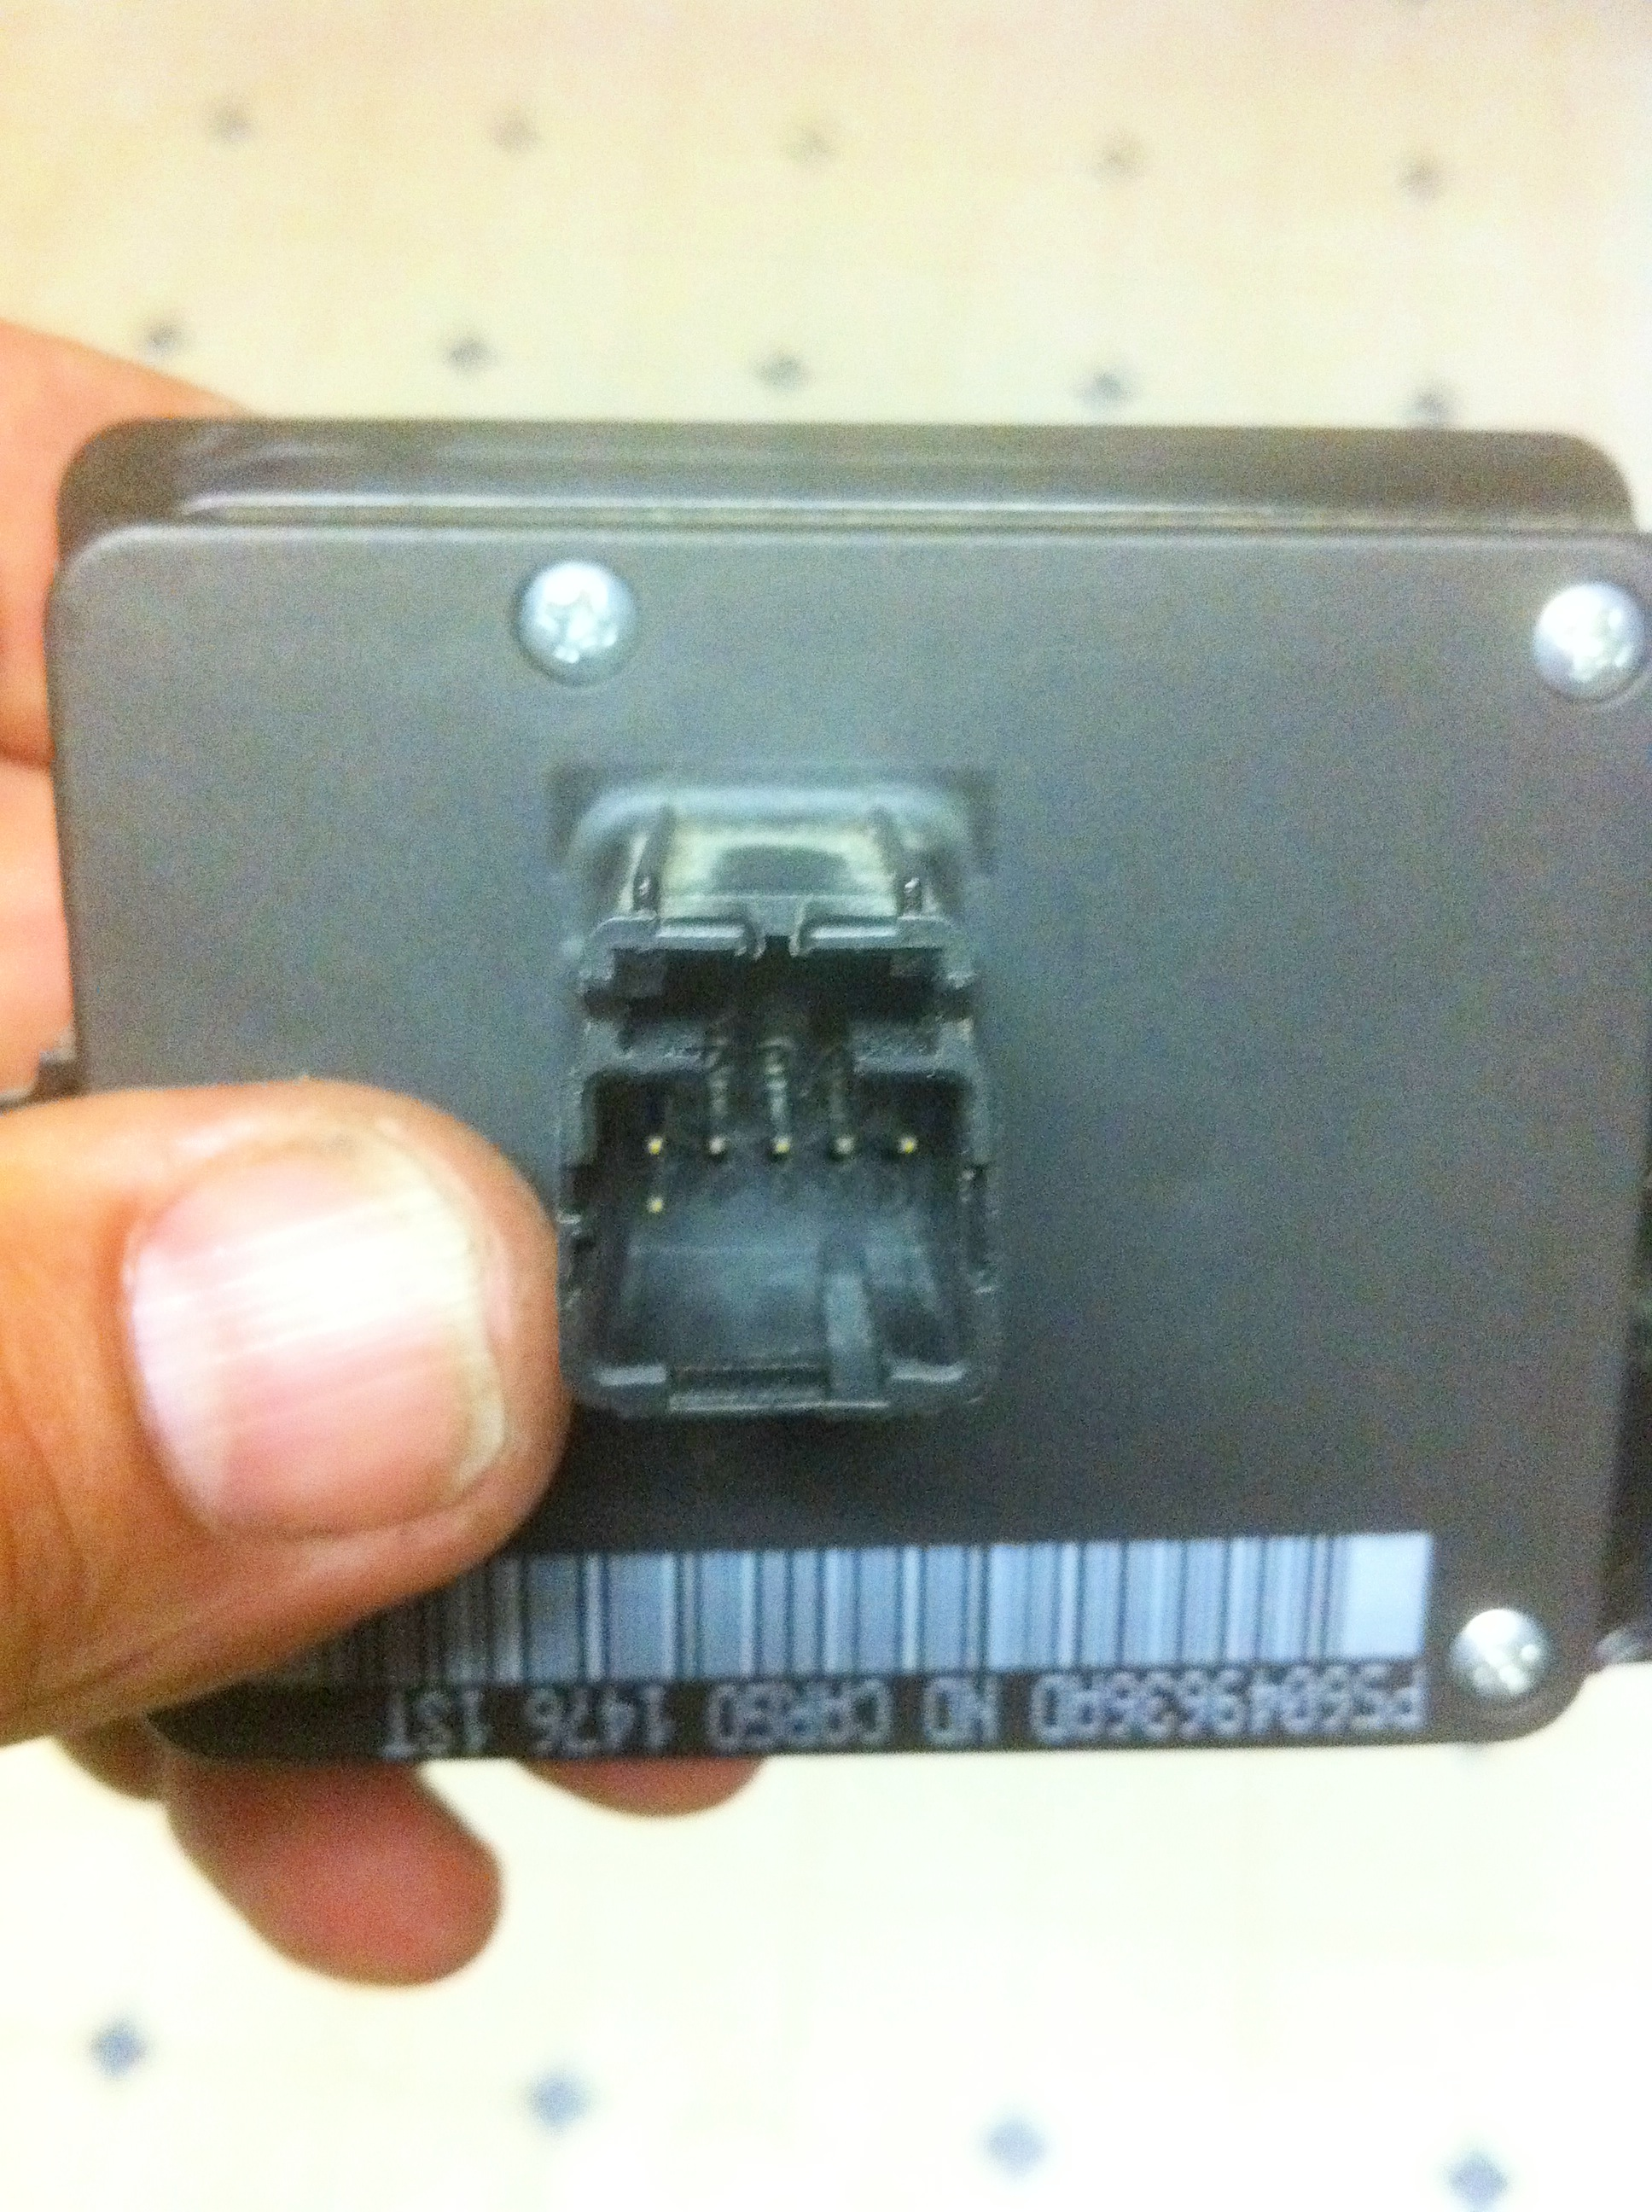 I Need An Elec Schematic For The Light Switch On A 2007 Dodge Ram 2500 72 Truck Ignition Wiring Full Size Image